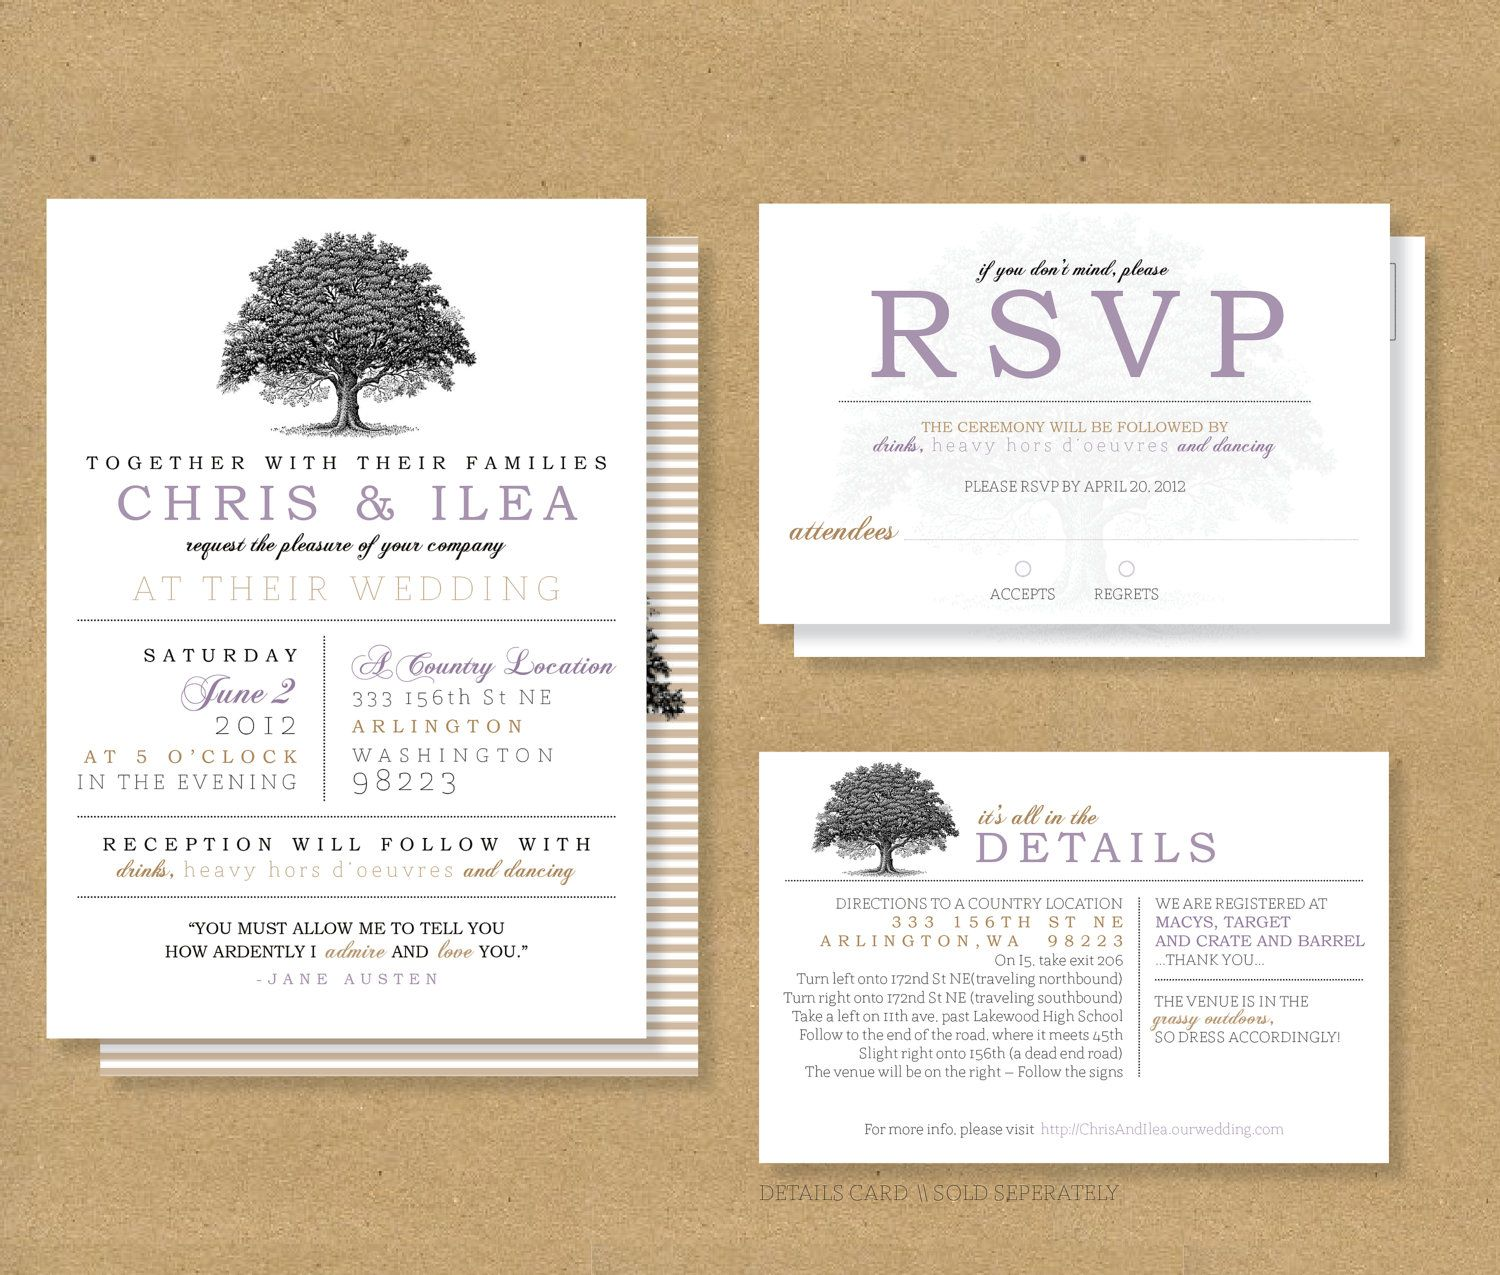 Samples Rsvp Wedding Cards Yeter Wpart Co